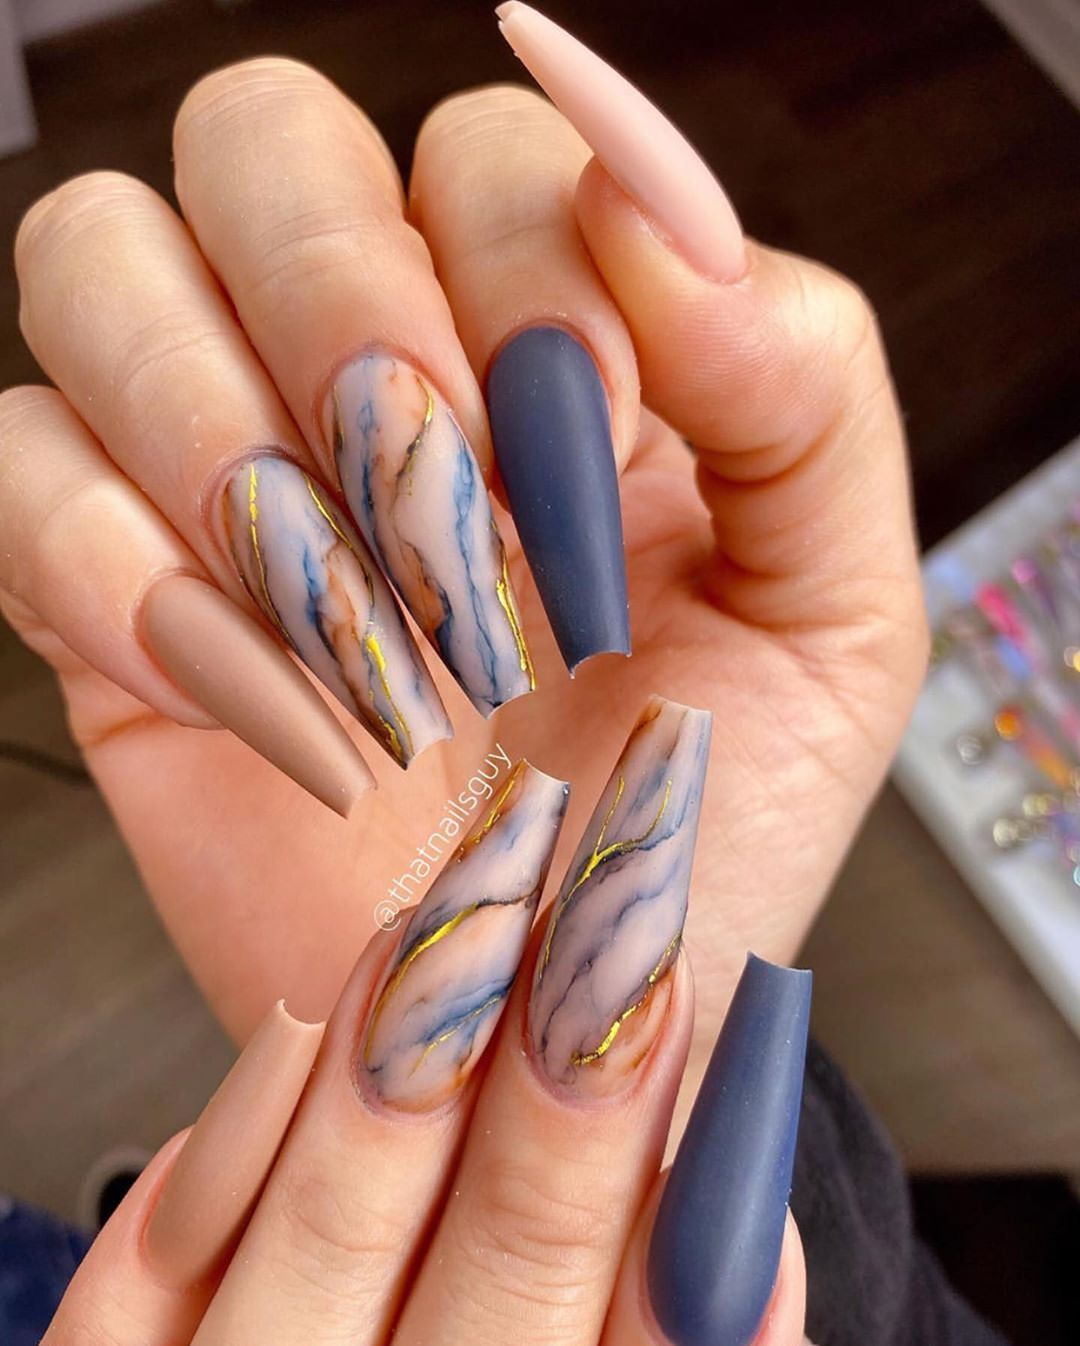 Makeup And Nails Of Insta On Instagram Marble Nails Doubletap Follow Makandnails Turn Swag Nails Fall Acrylic Nails Long Acrylic Nails